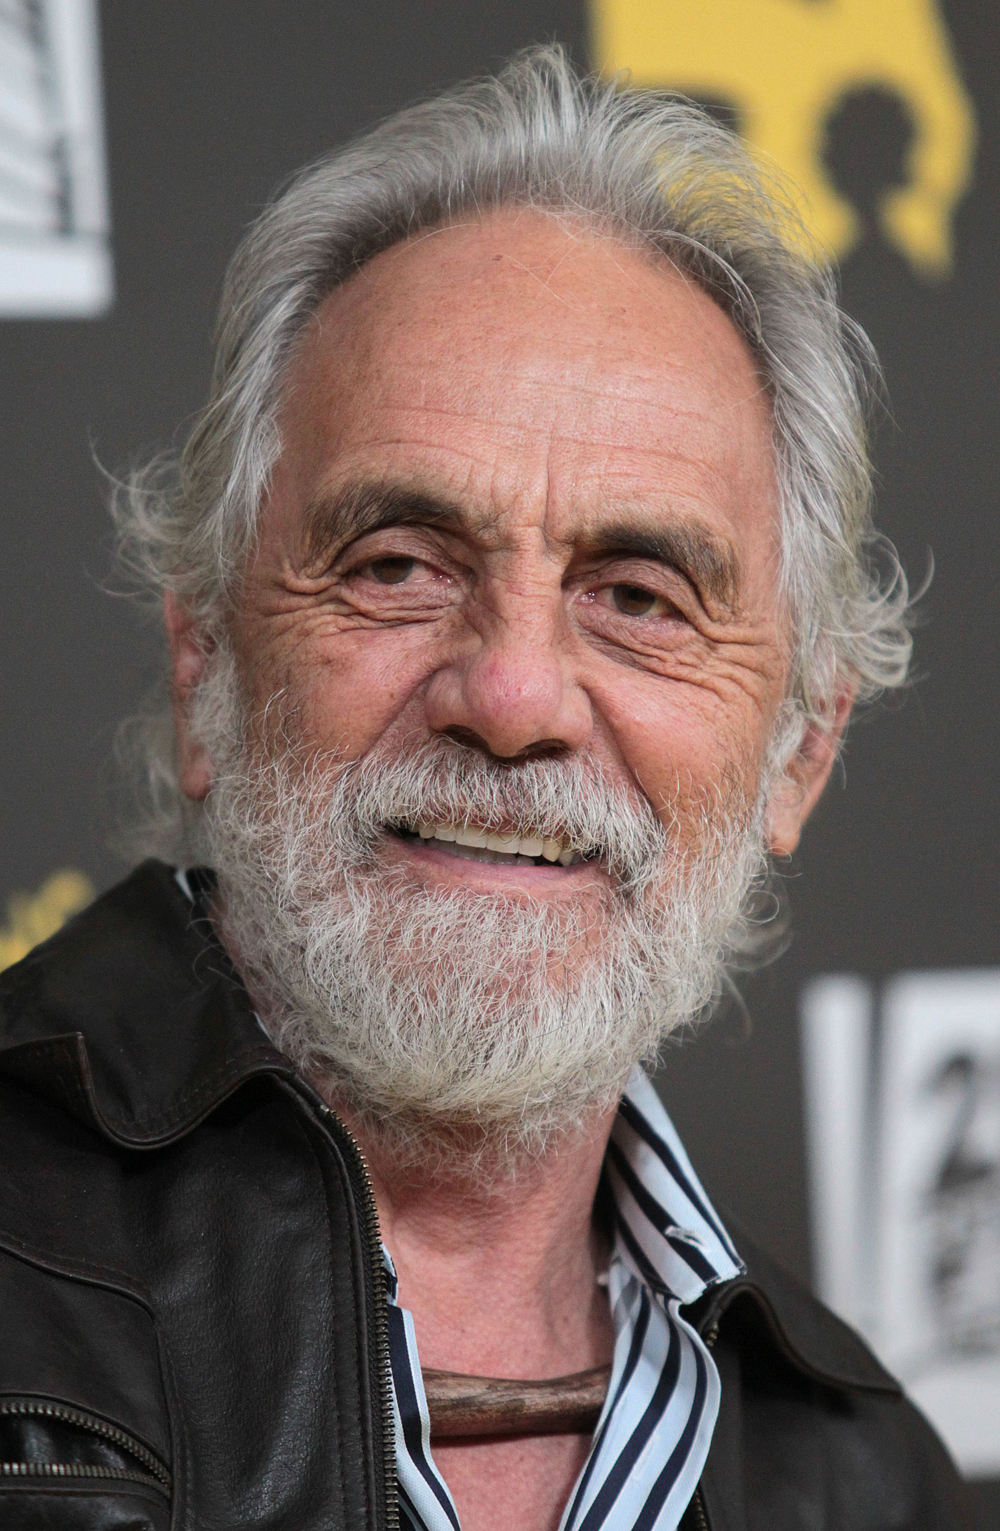 Tommy Chong is defending his daughter Rae Dawn telling TMZ she was just being honest when she said Oprah would have been a field Nword back in the